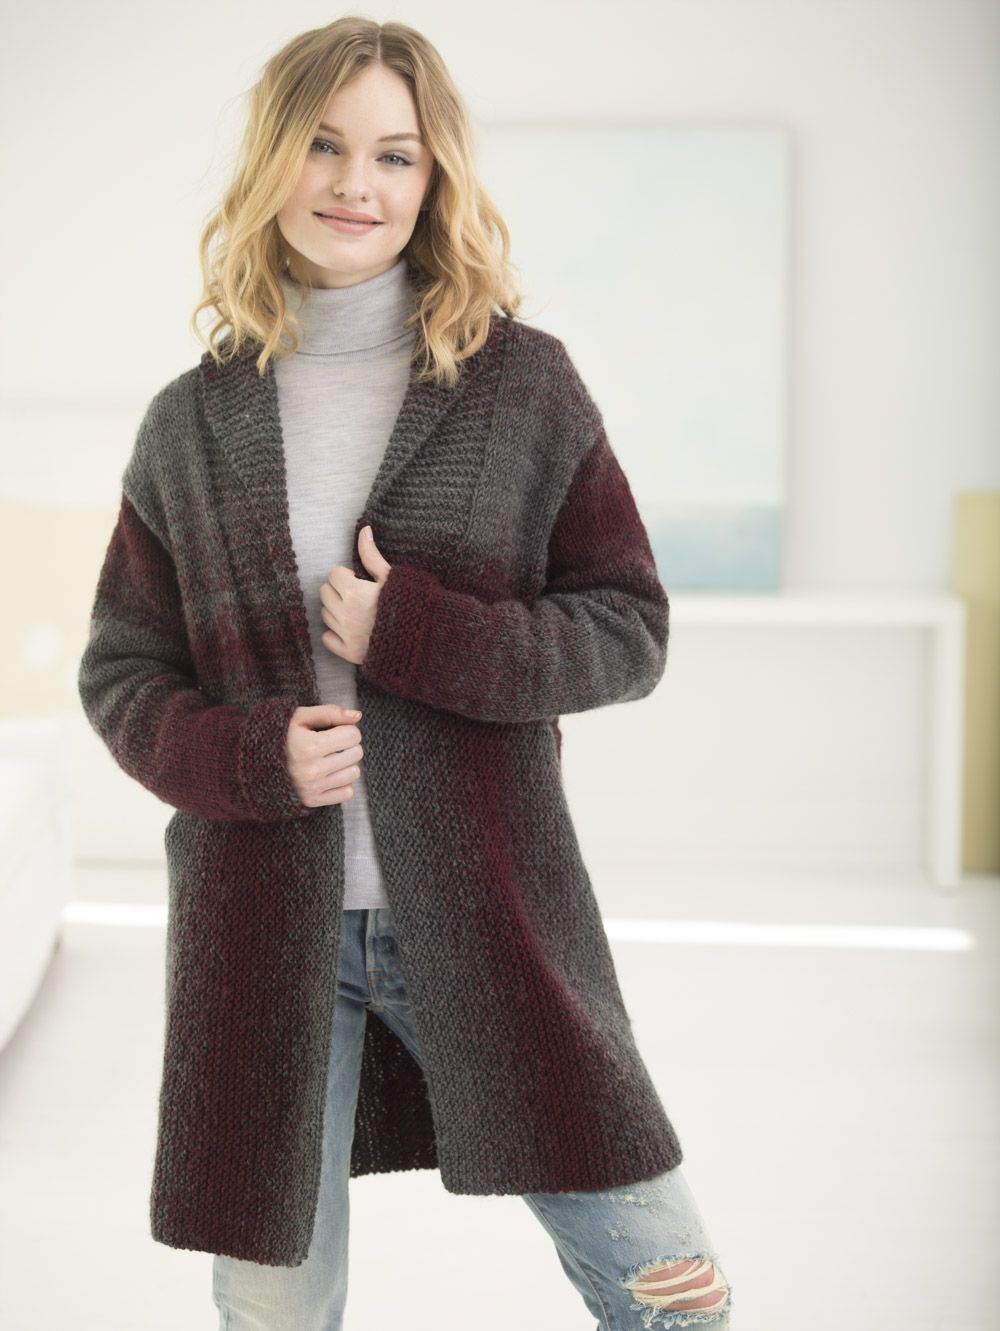 6afded6ddd9dca Knit this cozy cardigan with Lion Brand Scarfie! Free pattern calls for 5 -  7 balls of yarn (pictured in oxford claret) and size 9 36-inch circular  knitting ...